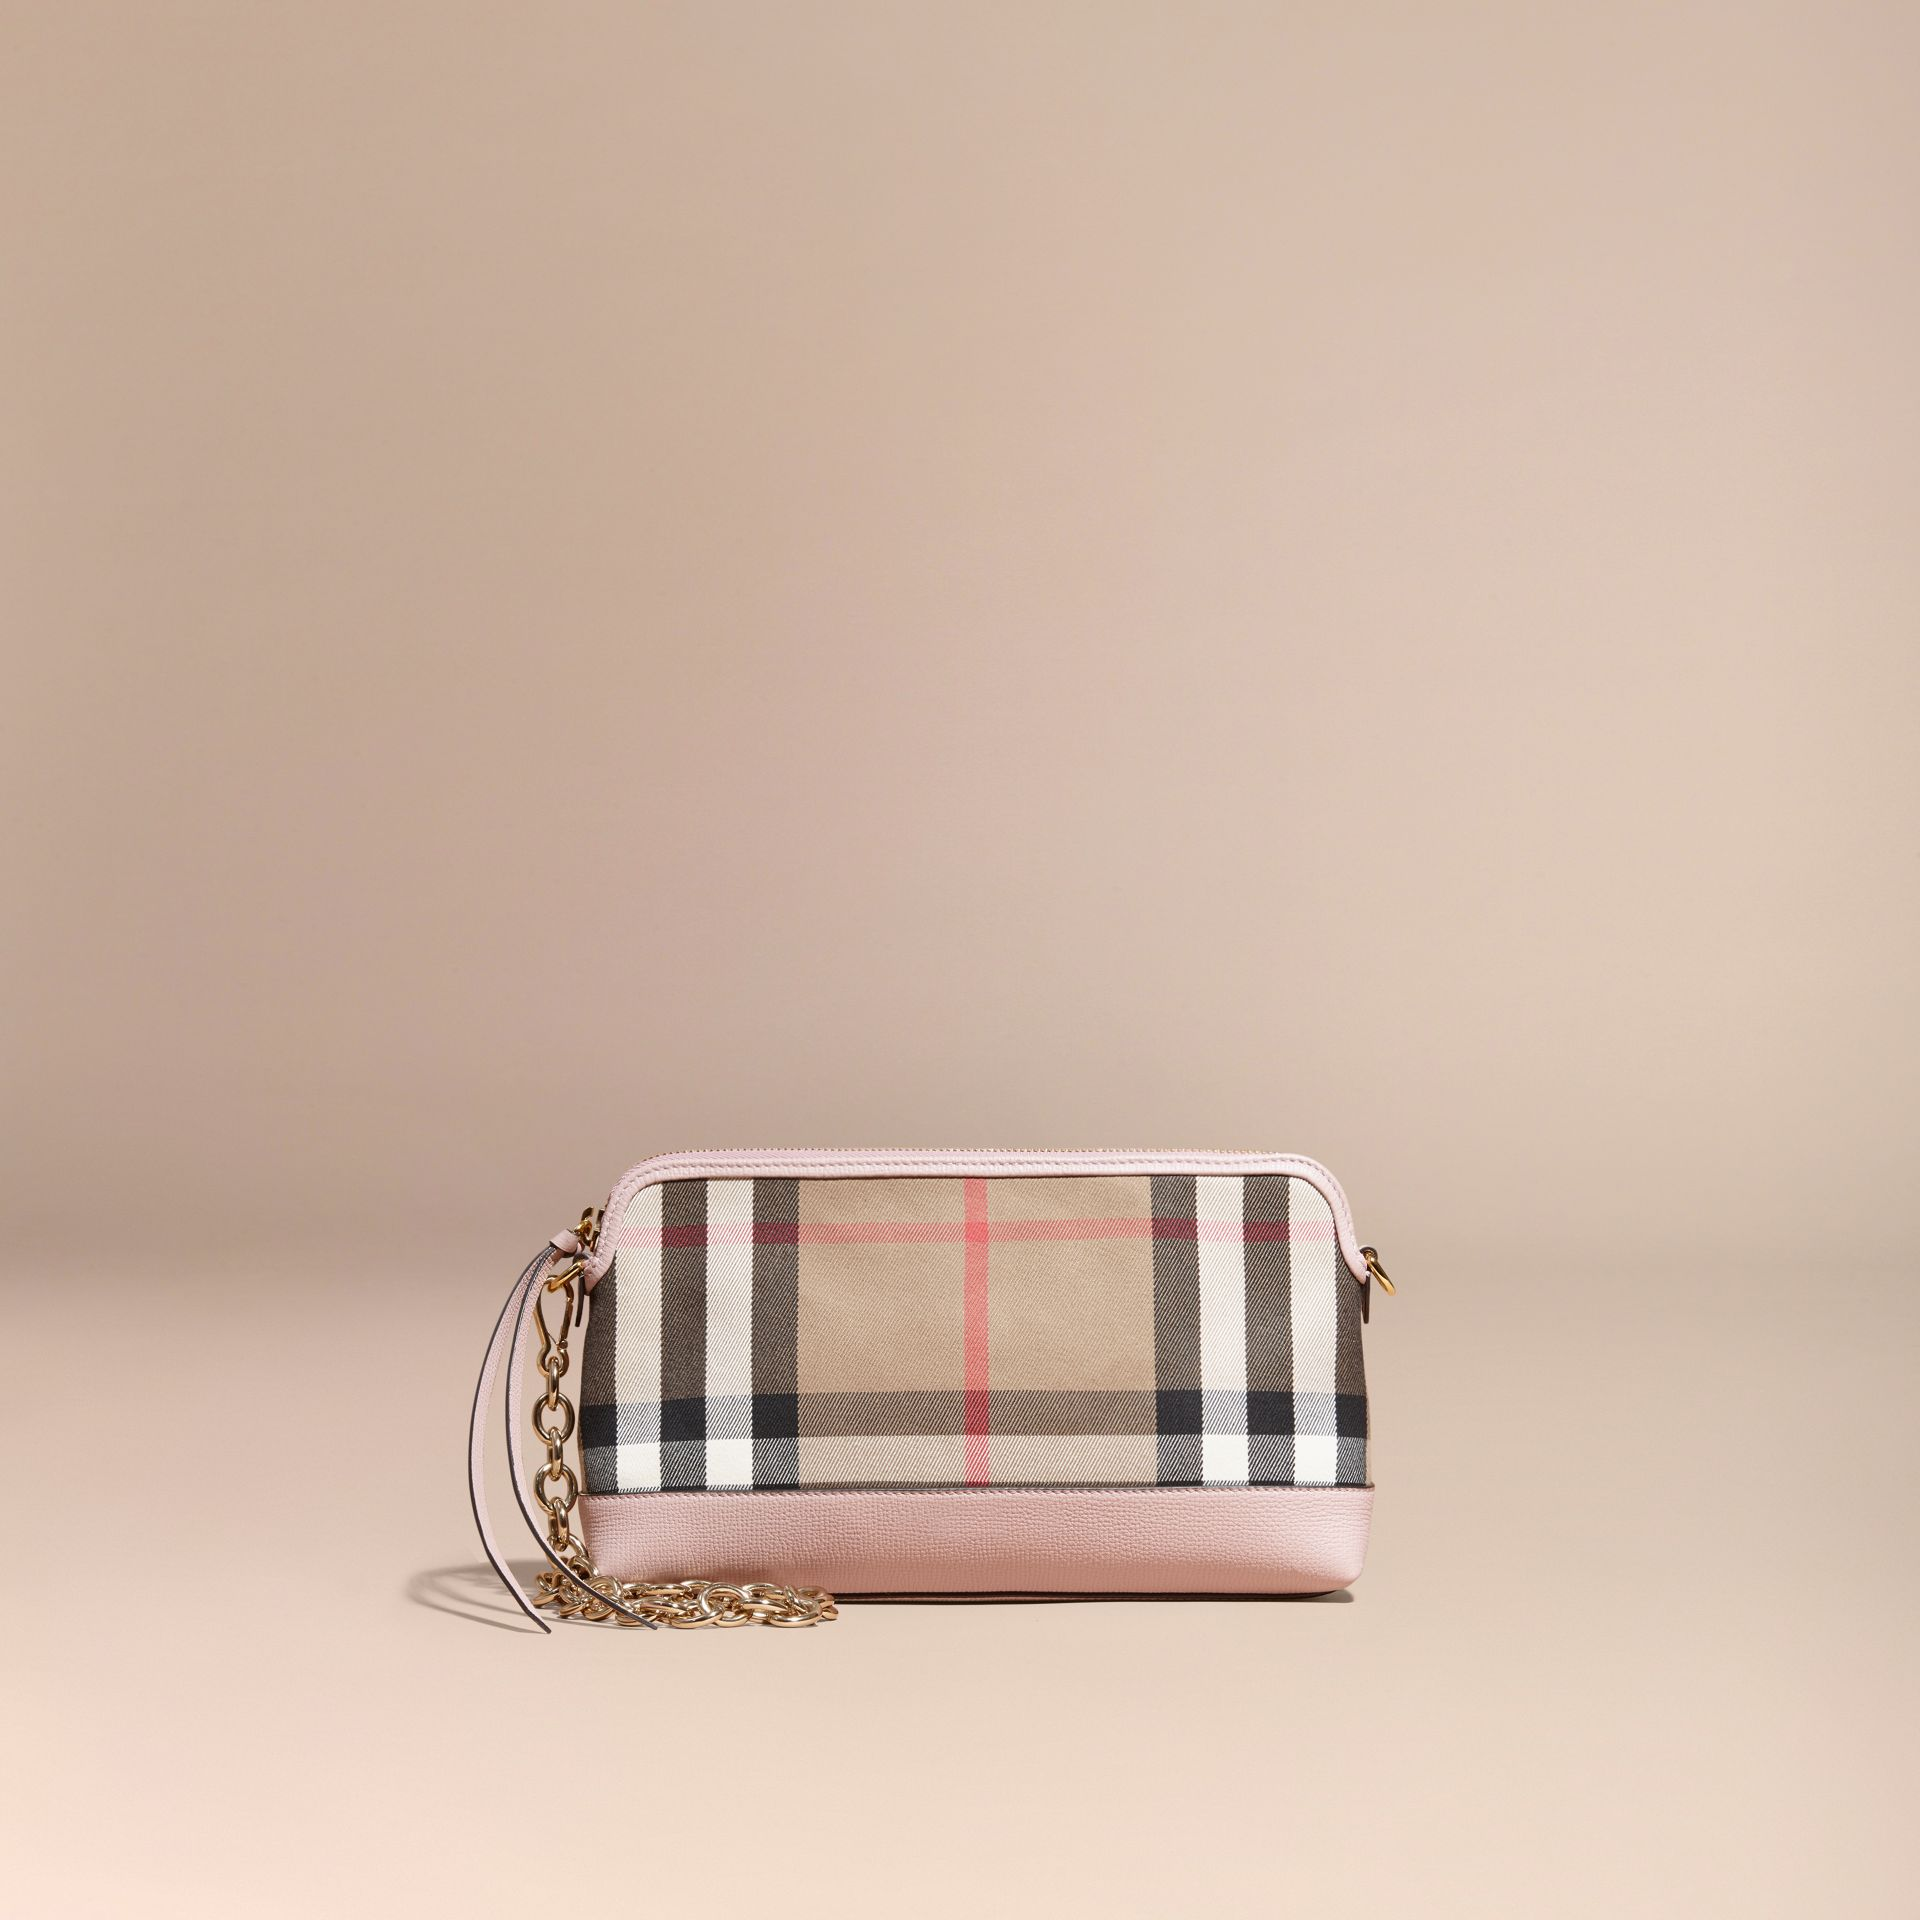 House Check and Leather Clutch Bag in Pale Orchid - Women | Burberry - gallery image 9